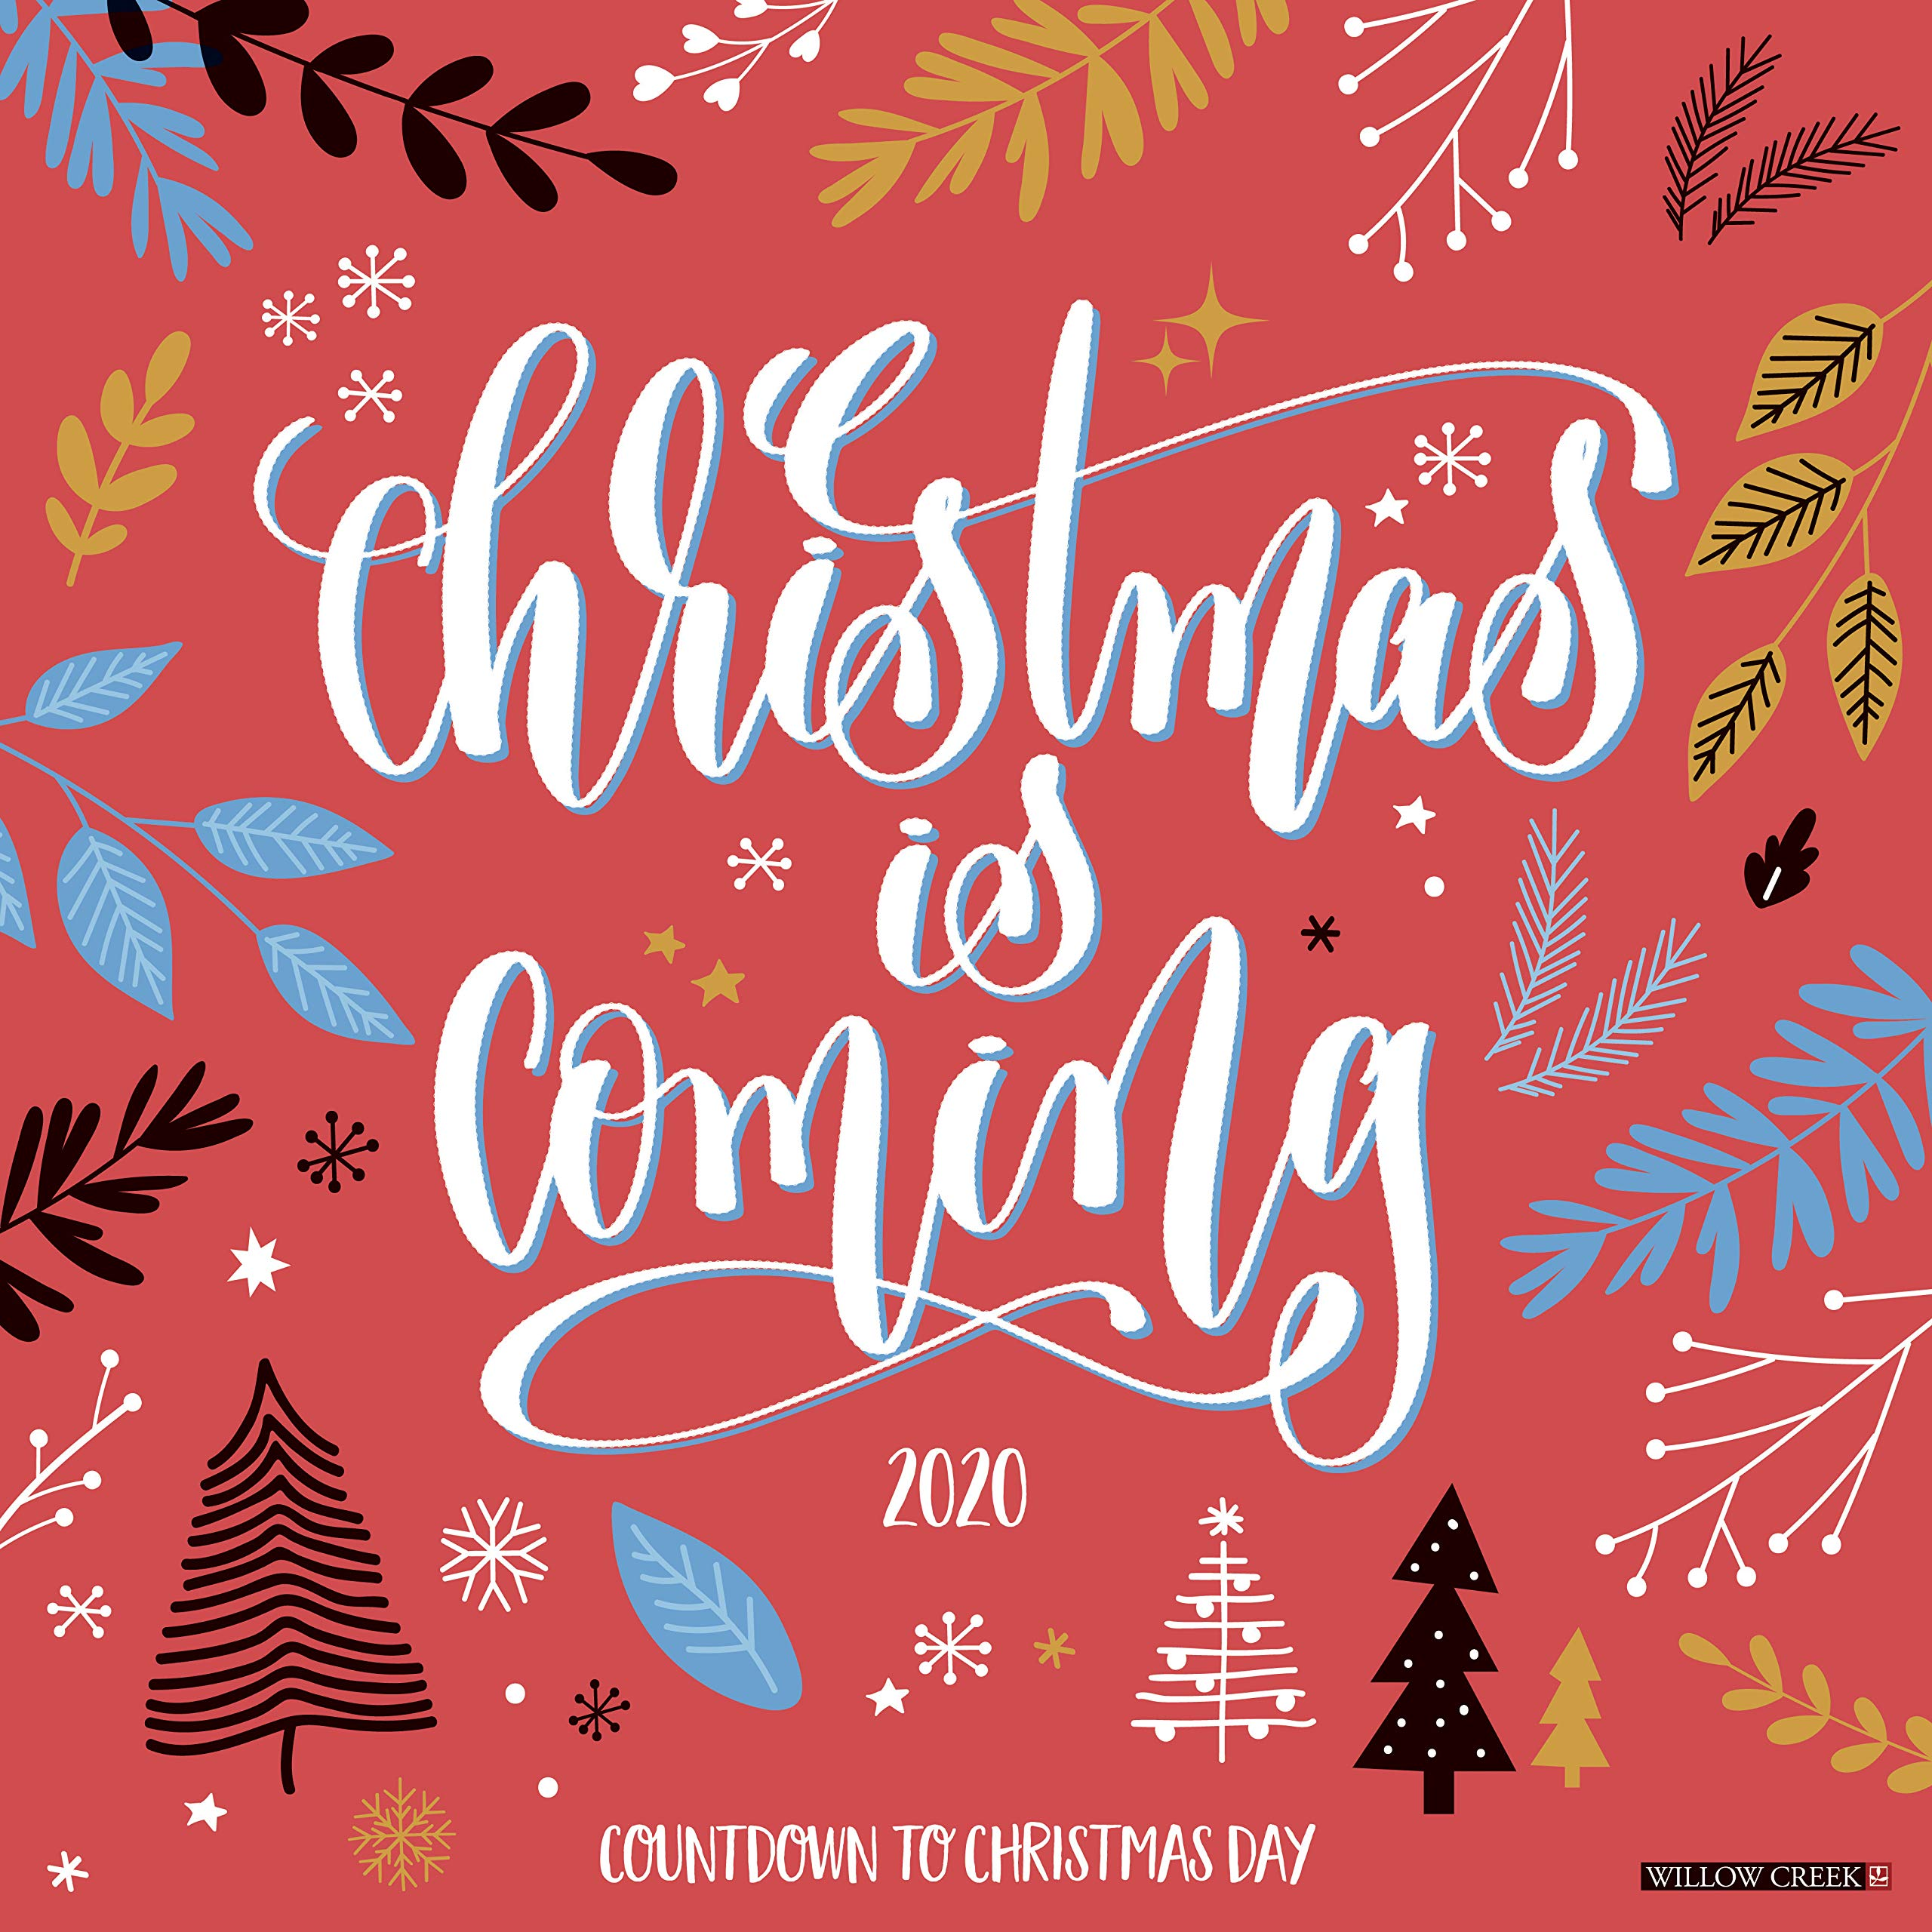 When Was Christmas 2020 Christmas is Coming 2020 Wall Calendar: Willow Creek Press